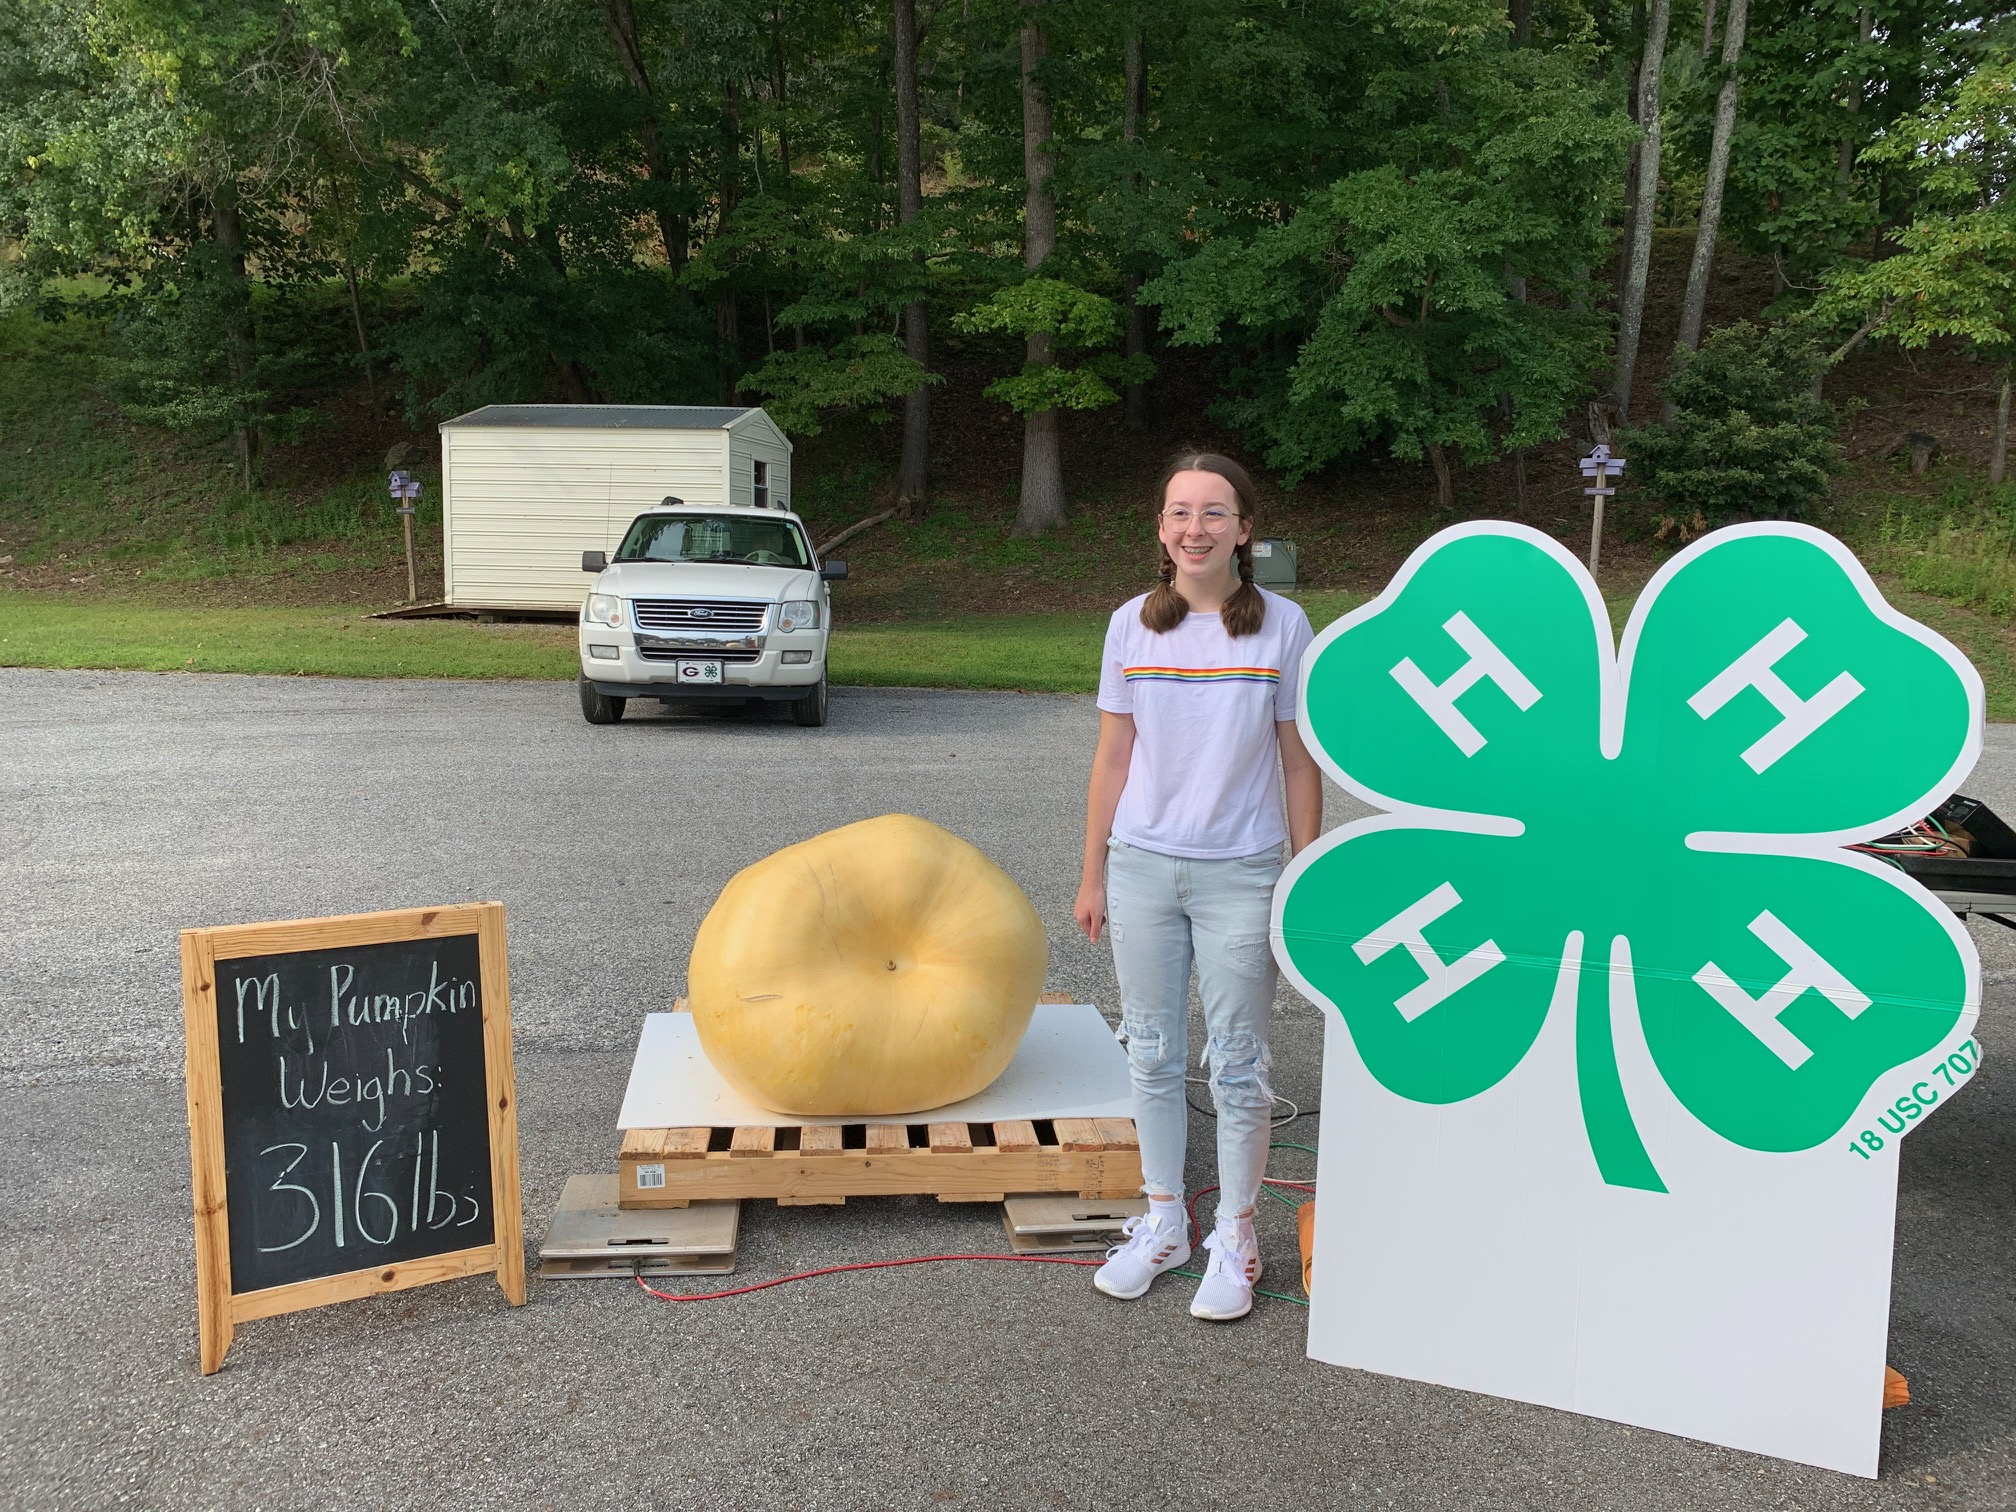 Ava Sharp of Union County had the third-place pumpkin, weighing 316 pounds.